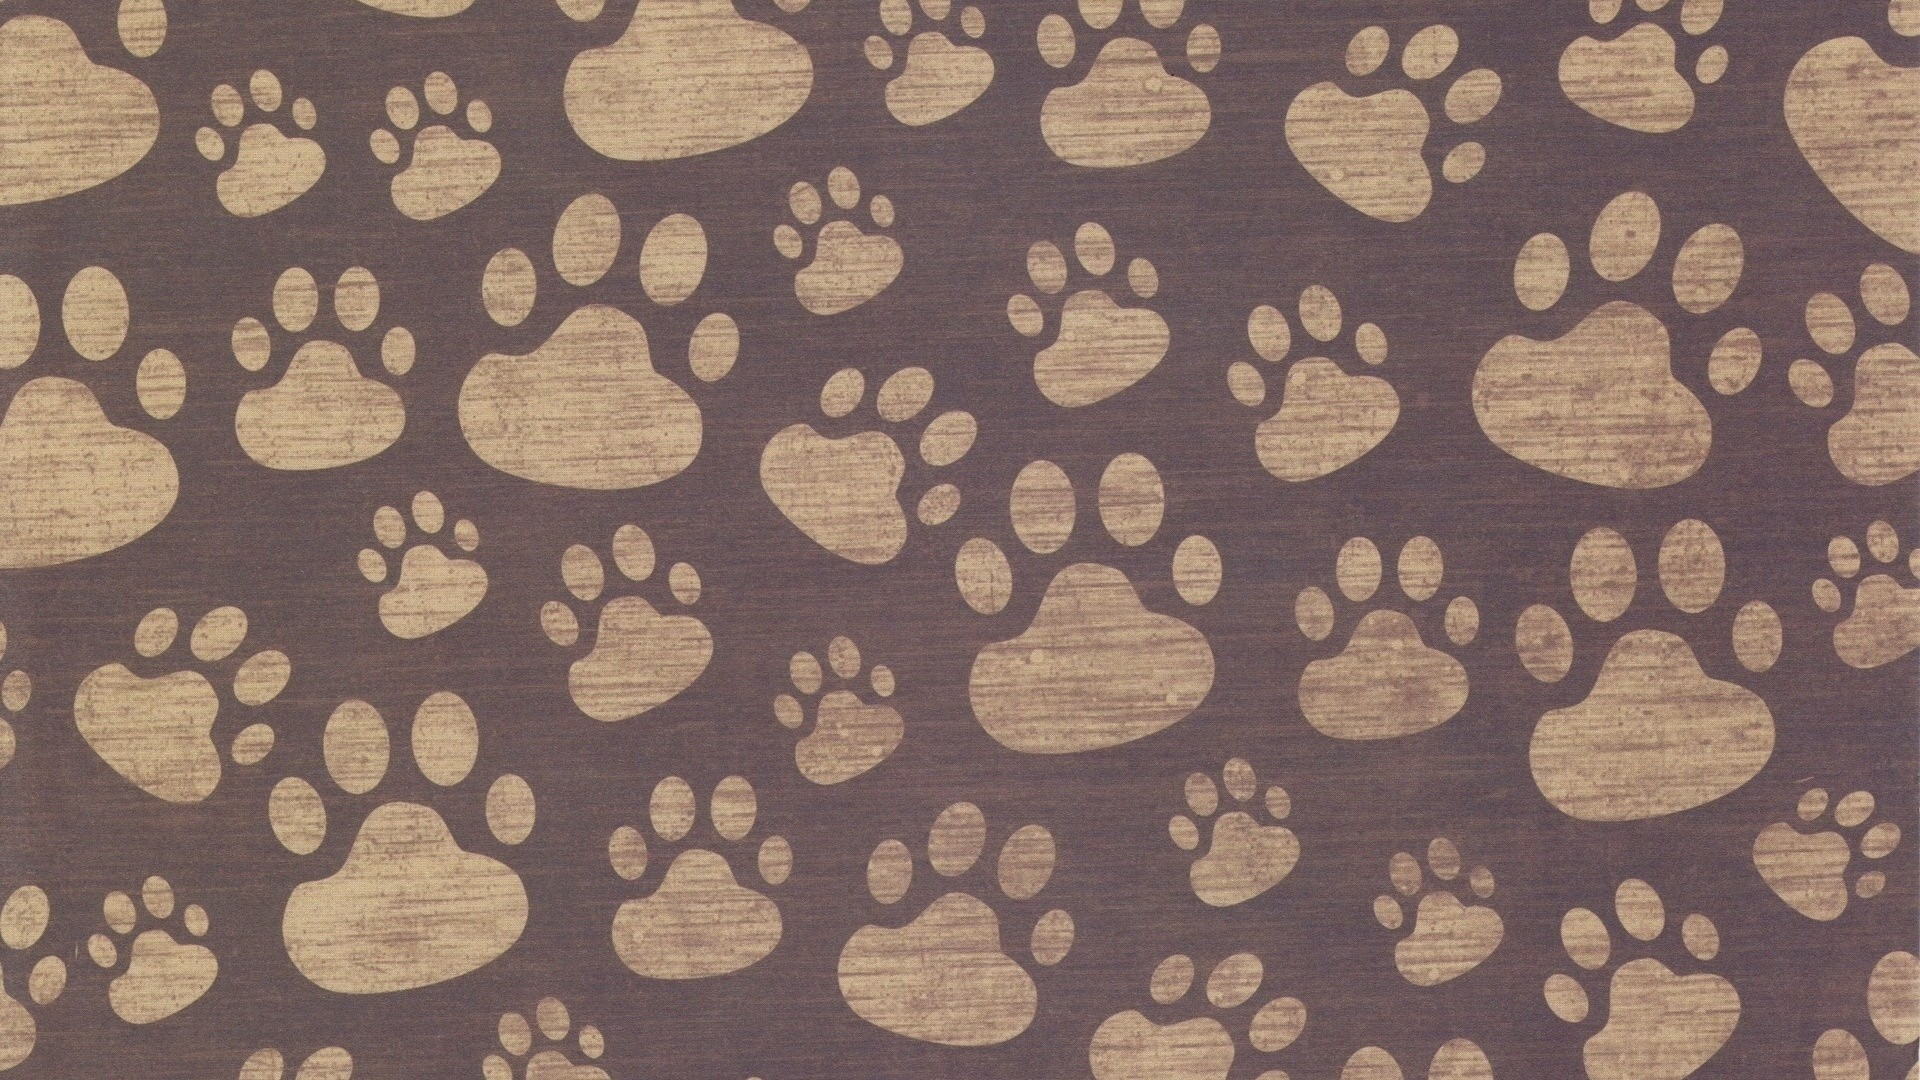 Dog Paws Wallpaper (41+ images)